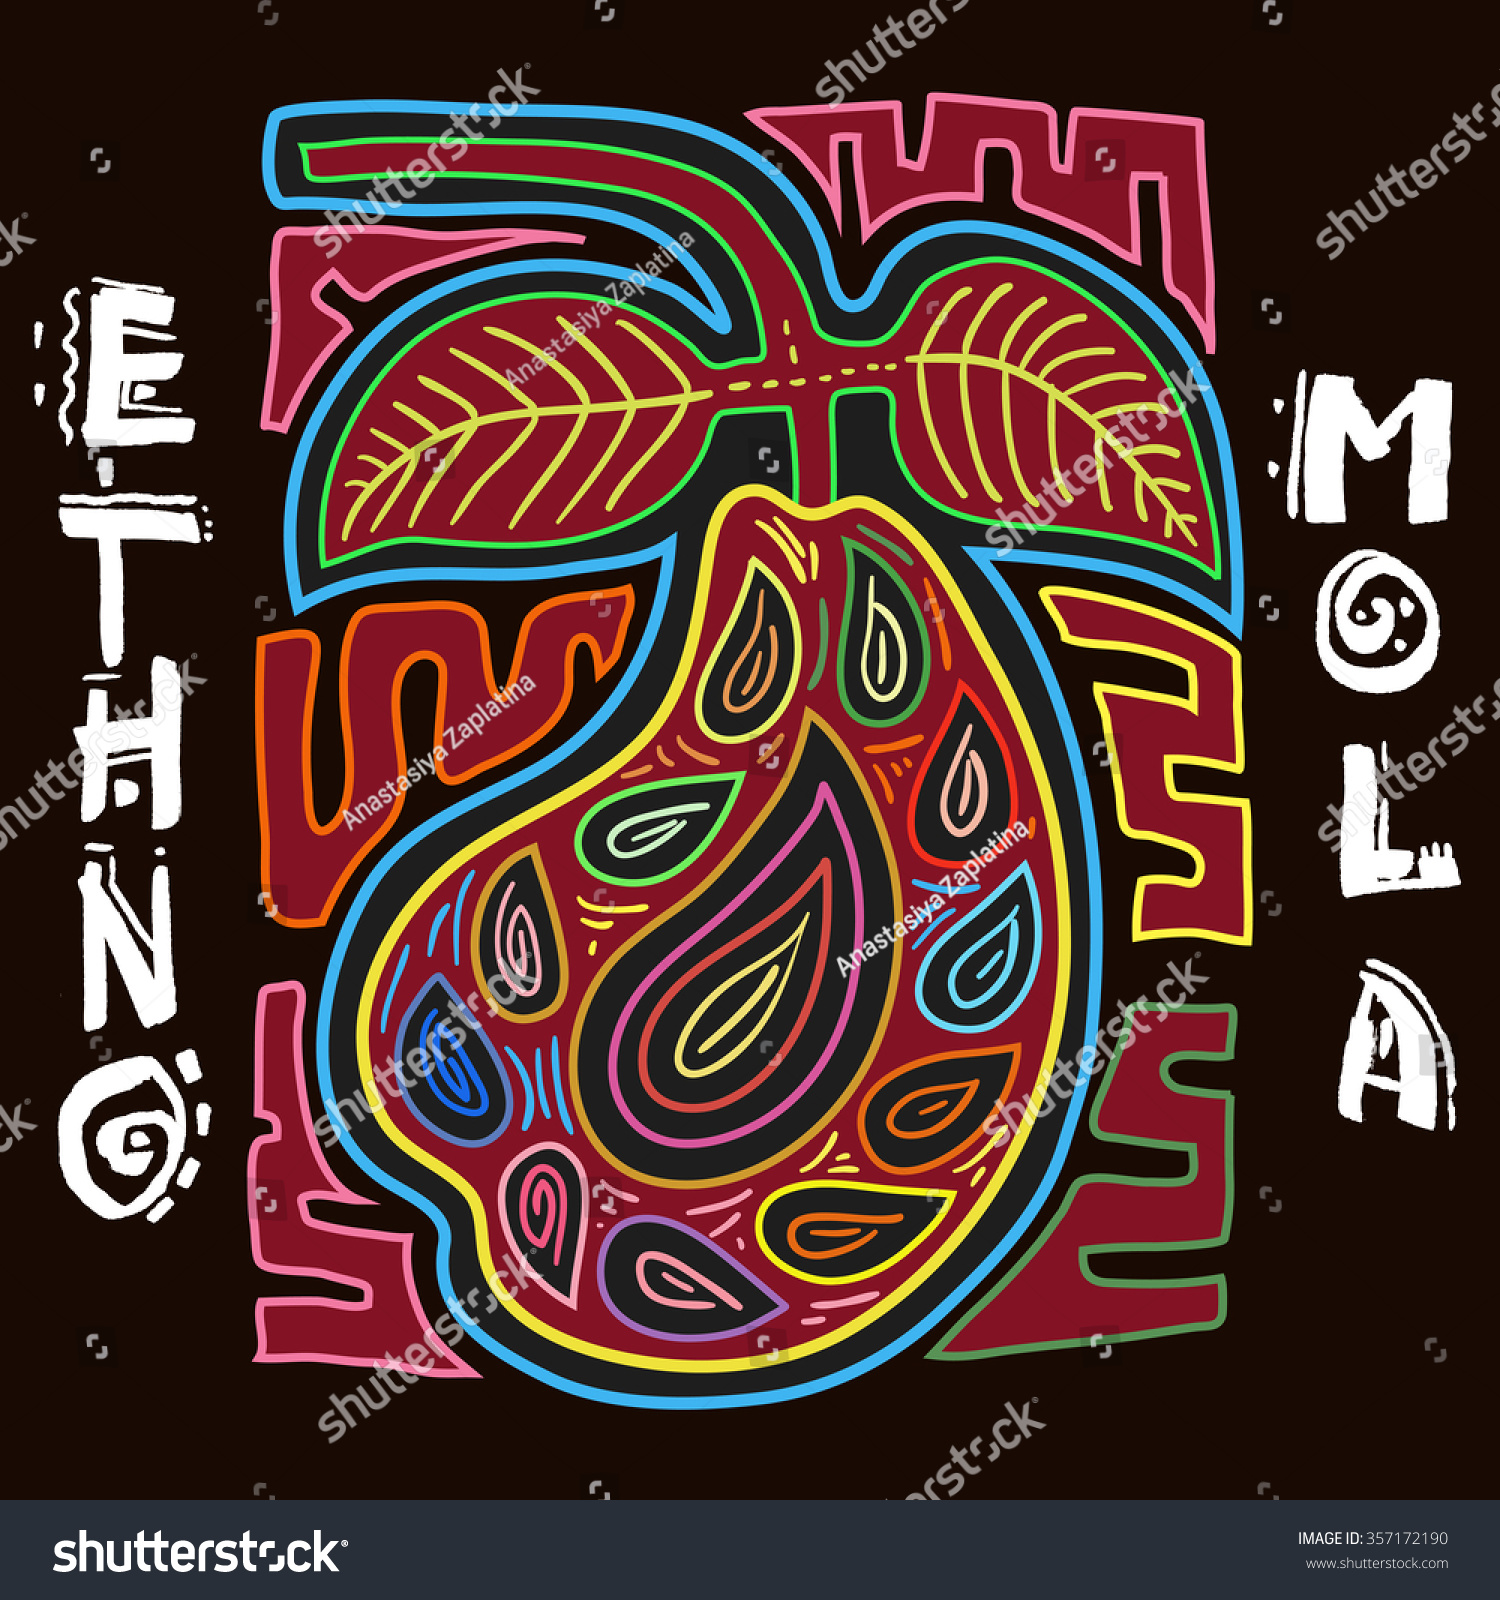 colorful ethnic design element ethno mola stock vector 357172190 shutterstock. Black Bedroom Furniture Sets. Home Design Ideas